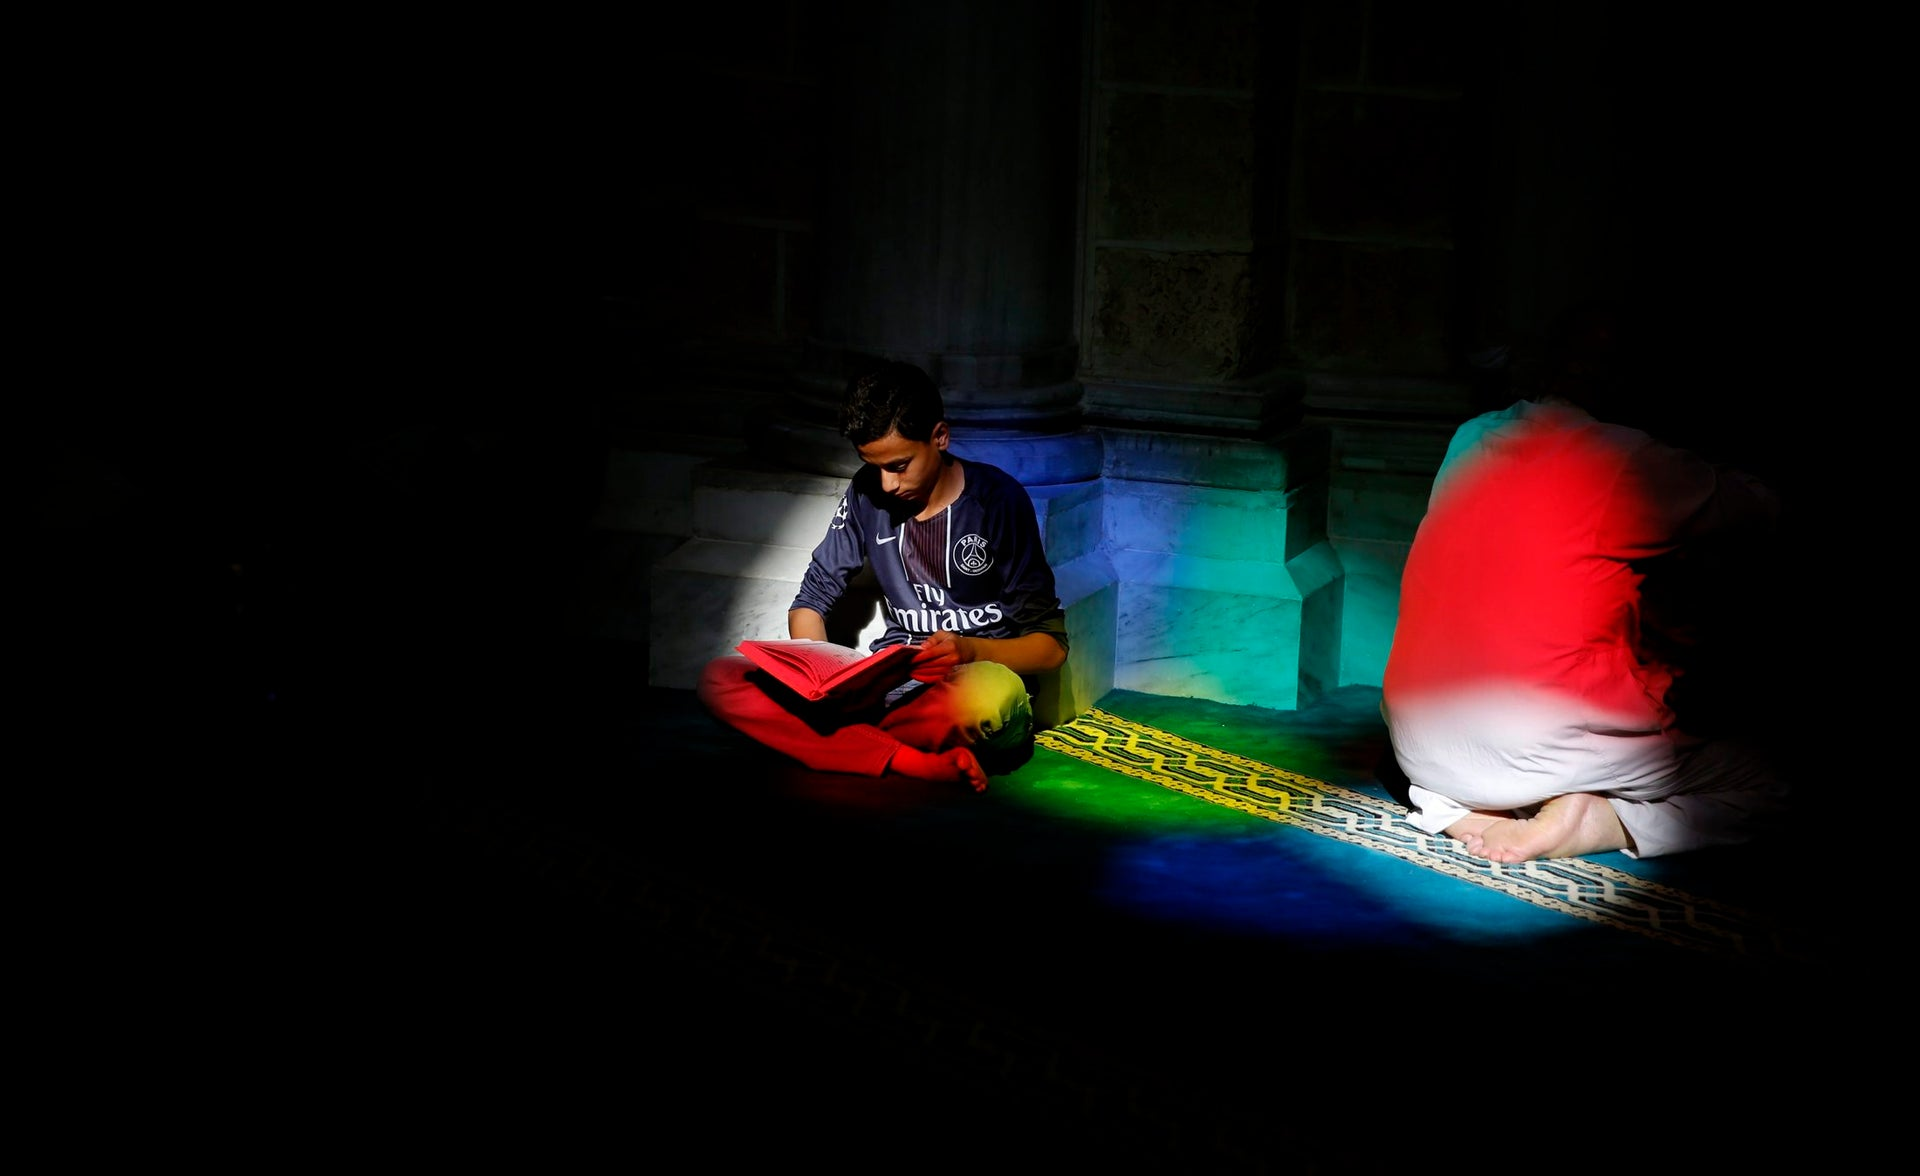 A Palestinian man reads verses of the Quran, Islam's holy book, during the month of Ramadan at Al Emari mosque in Gaza City, Monday, May 29, 2017.